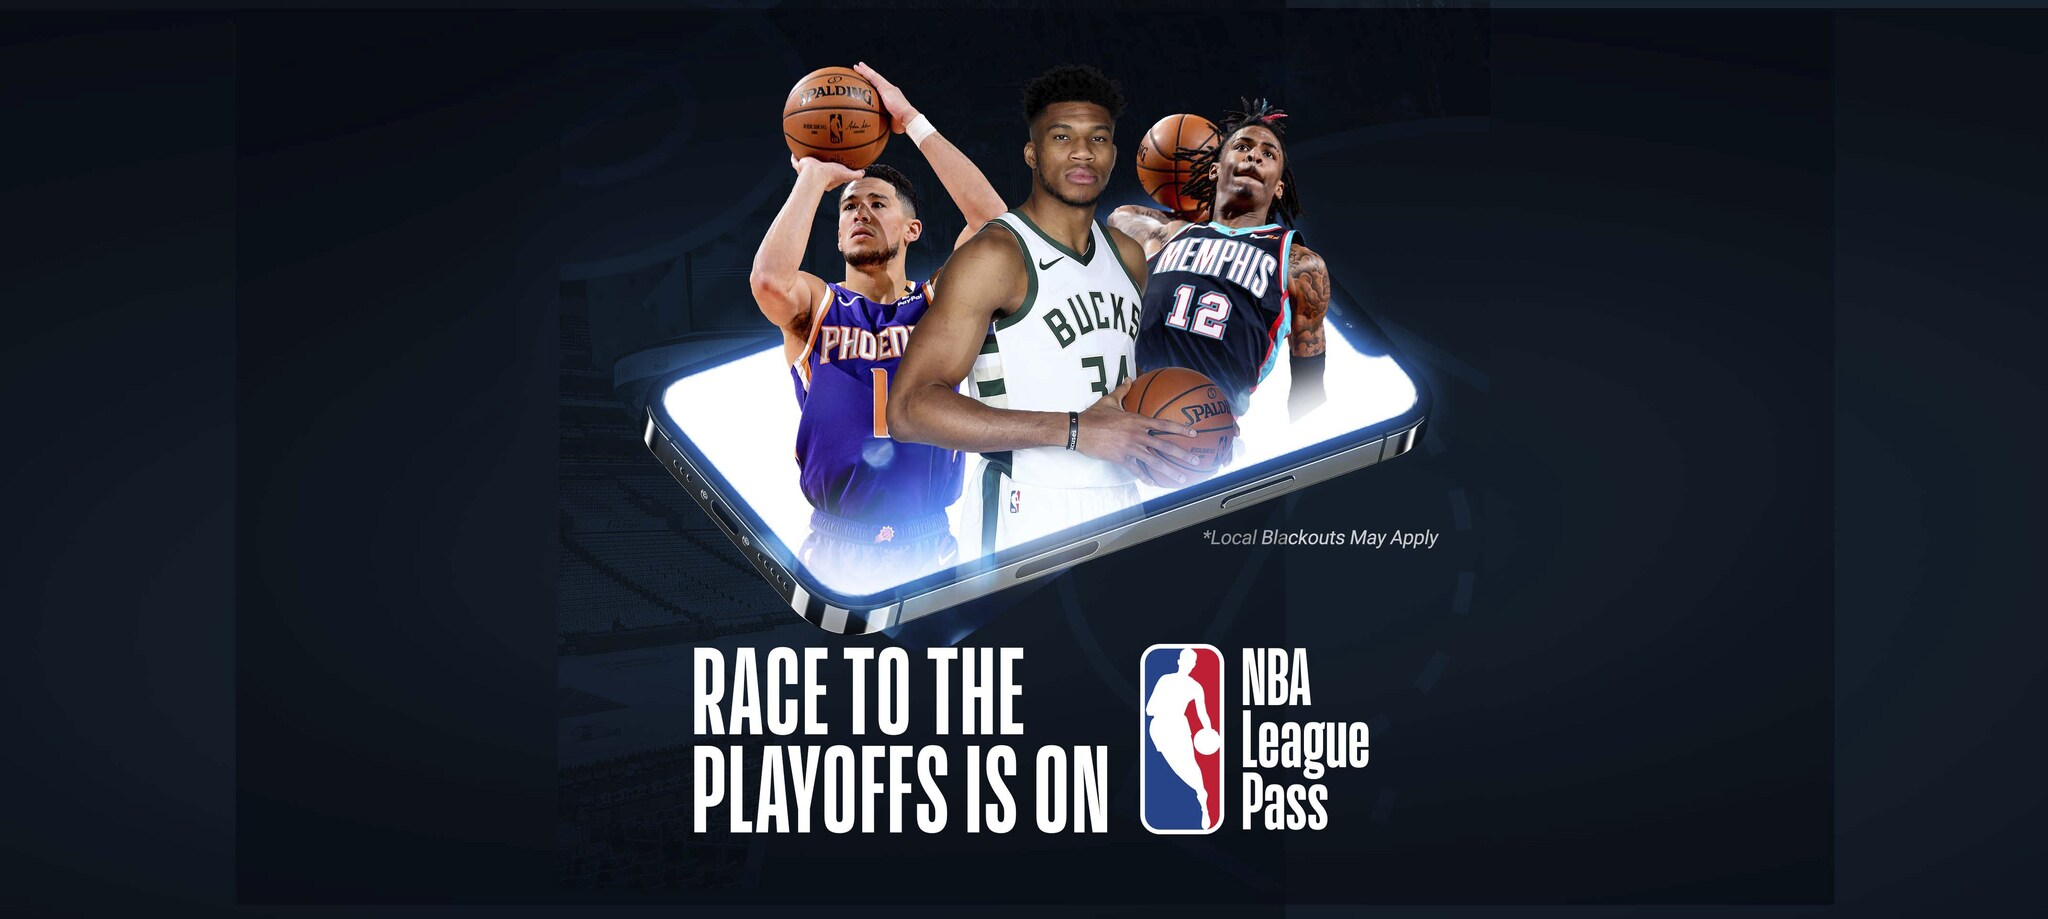 Limited-time offer: Try League Pass FREE